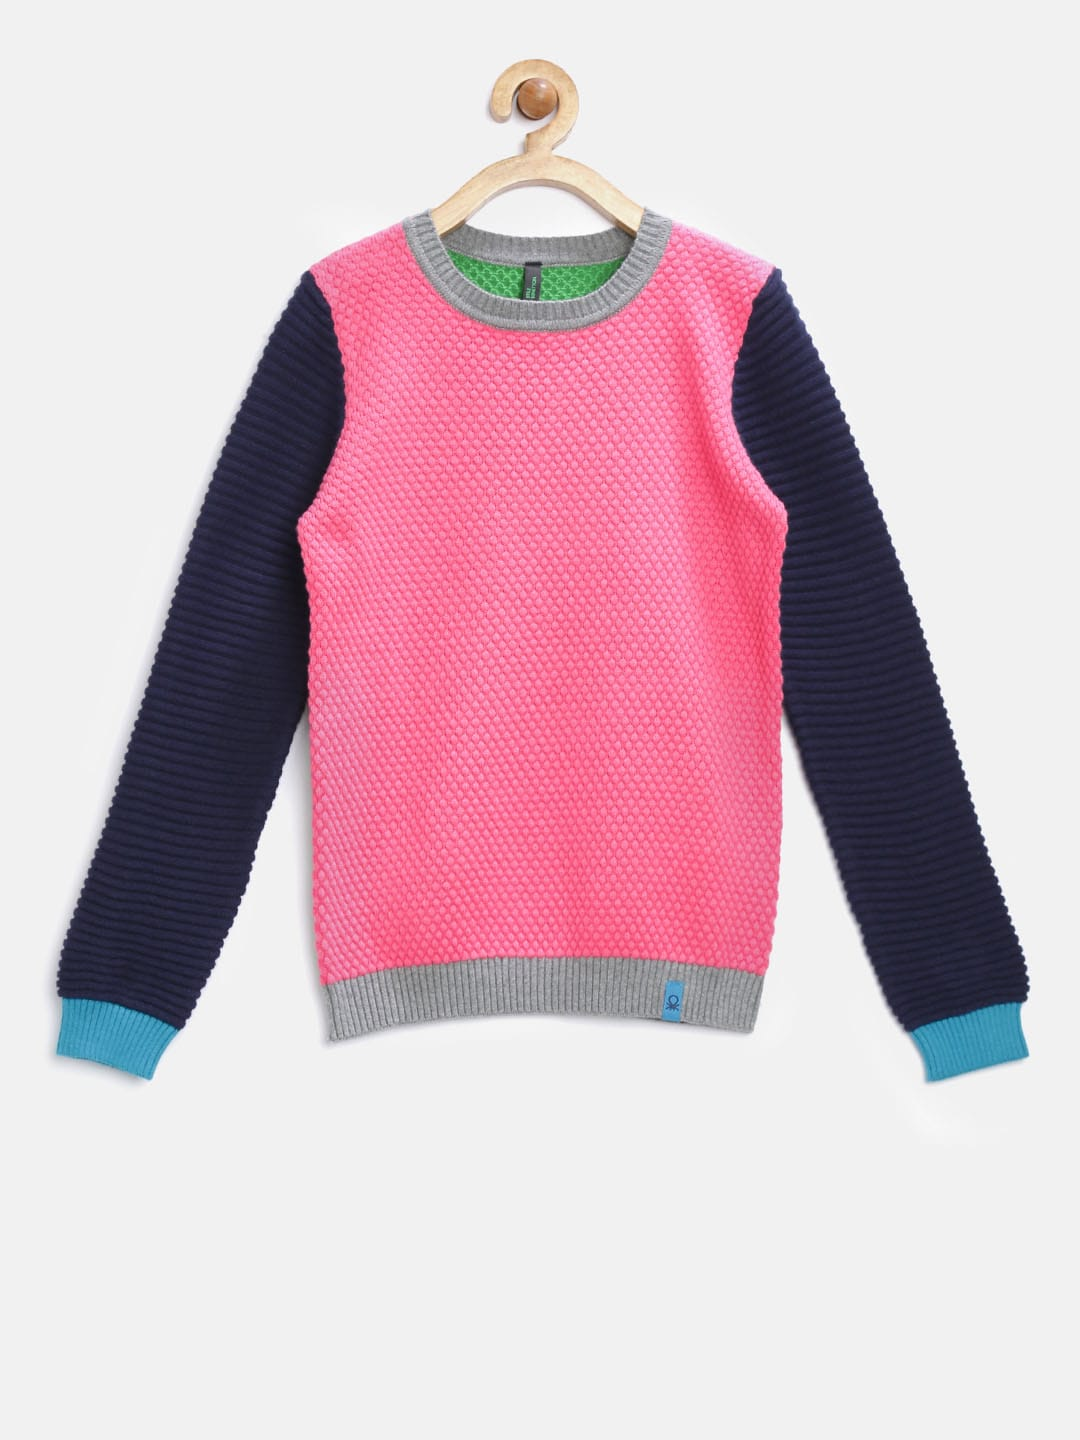 United Colors Of Benetton Sweaters - Buy United Colors Of Benetton ...